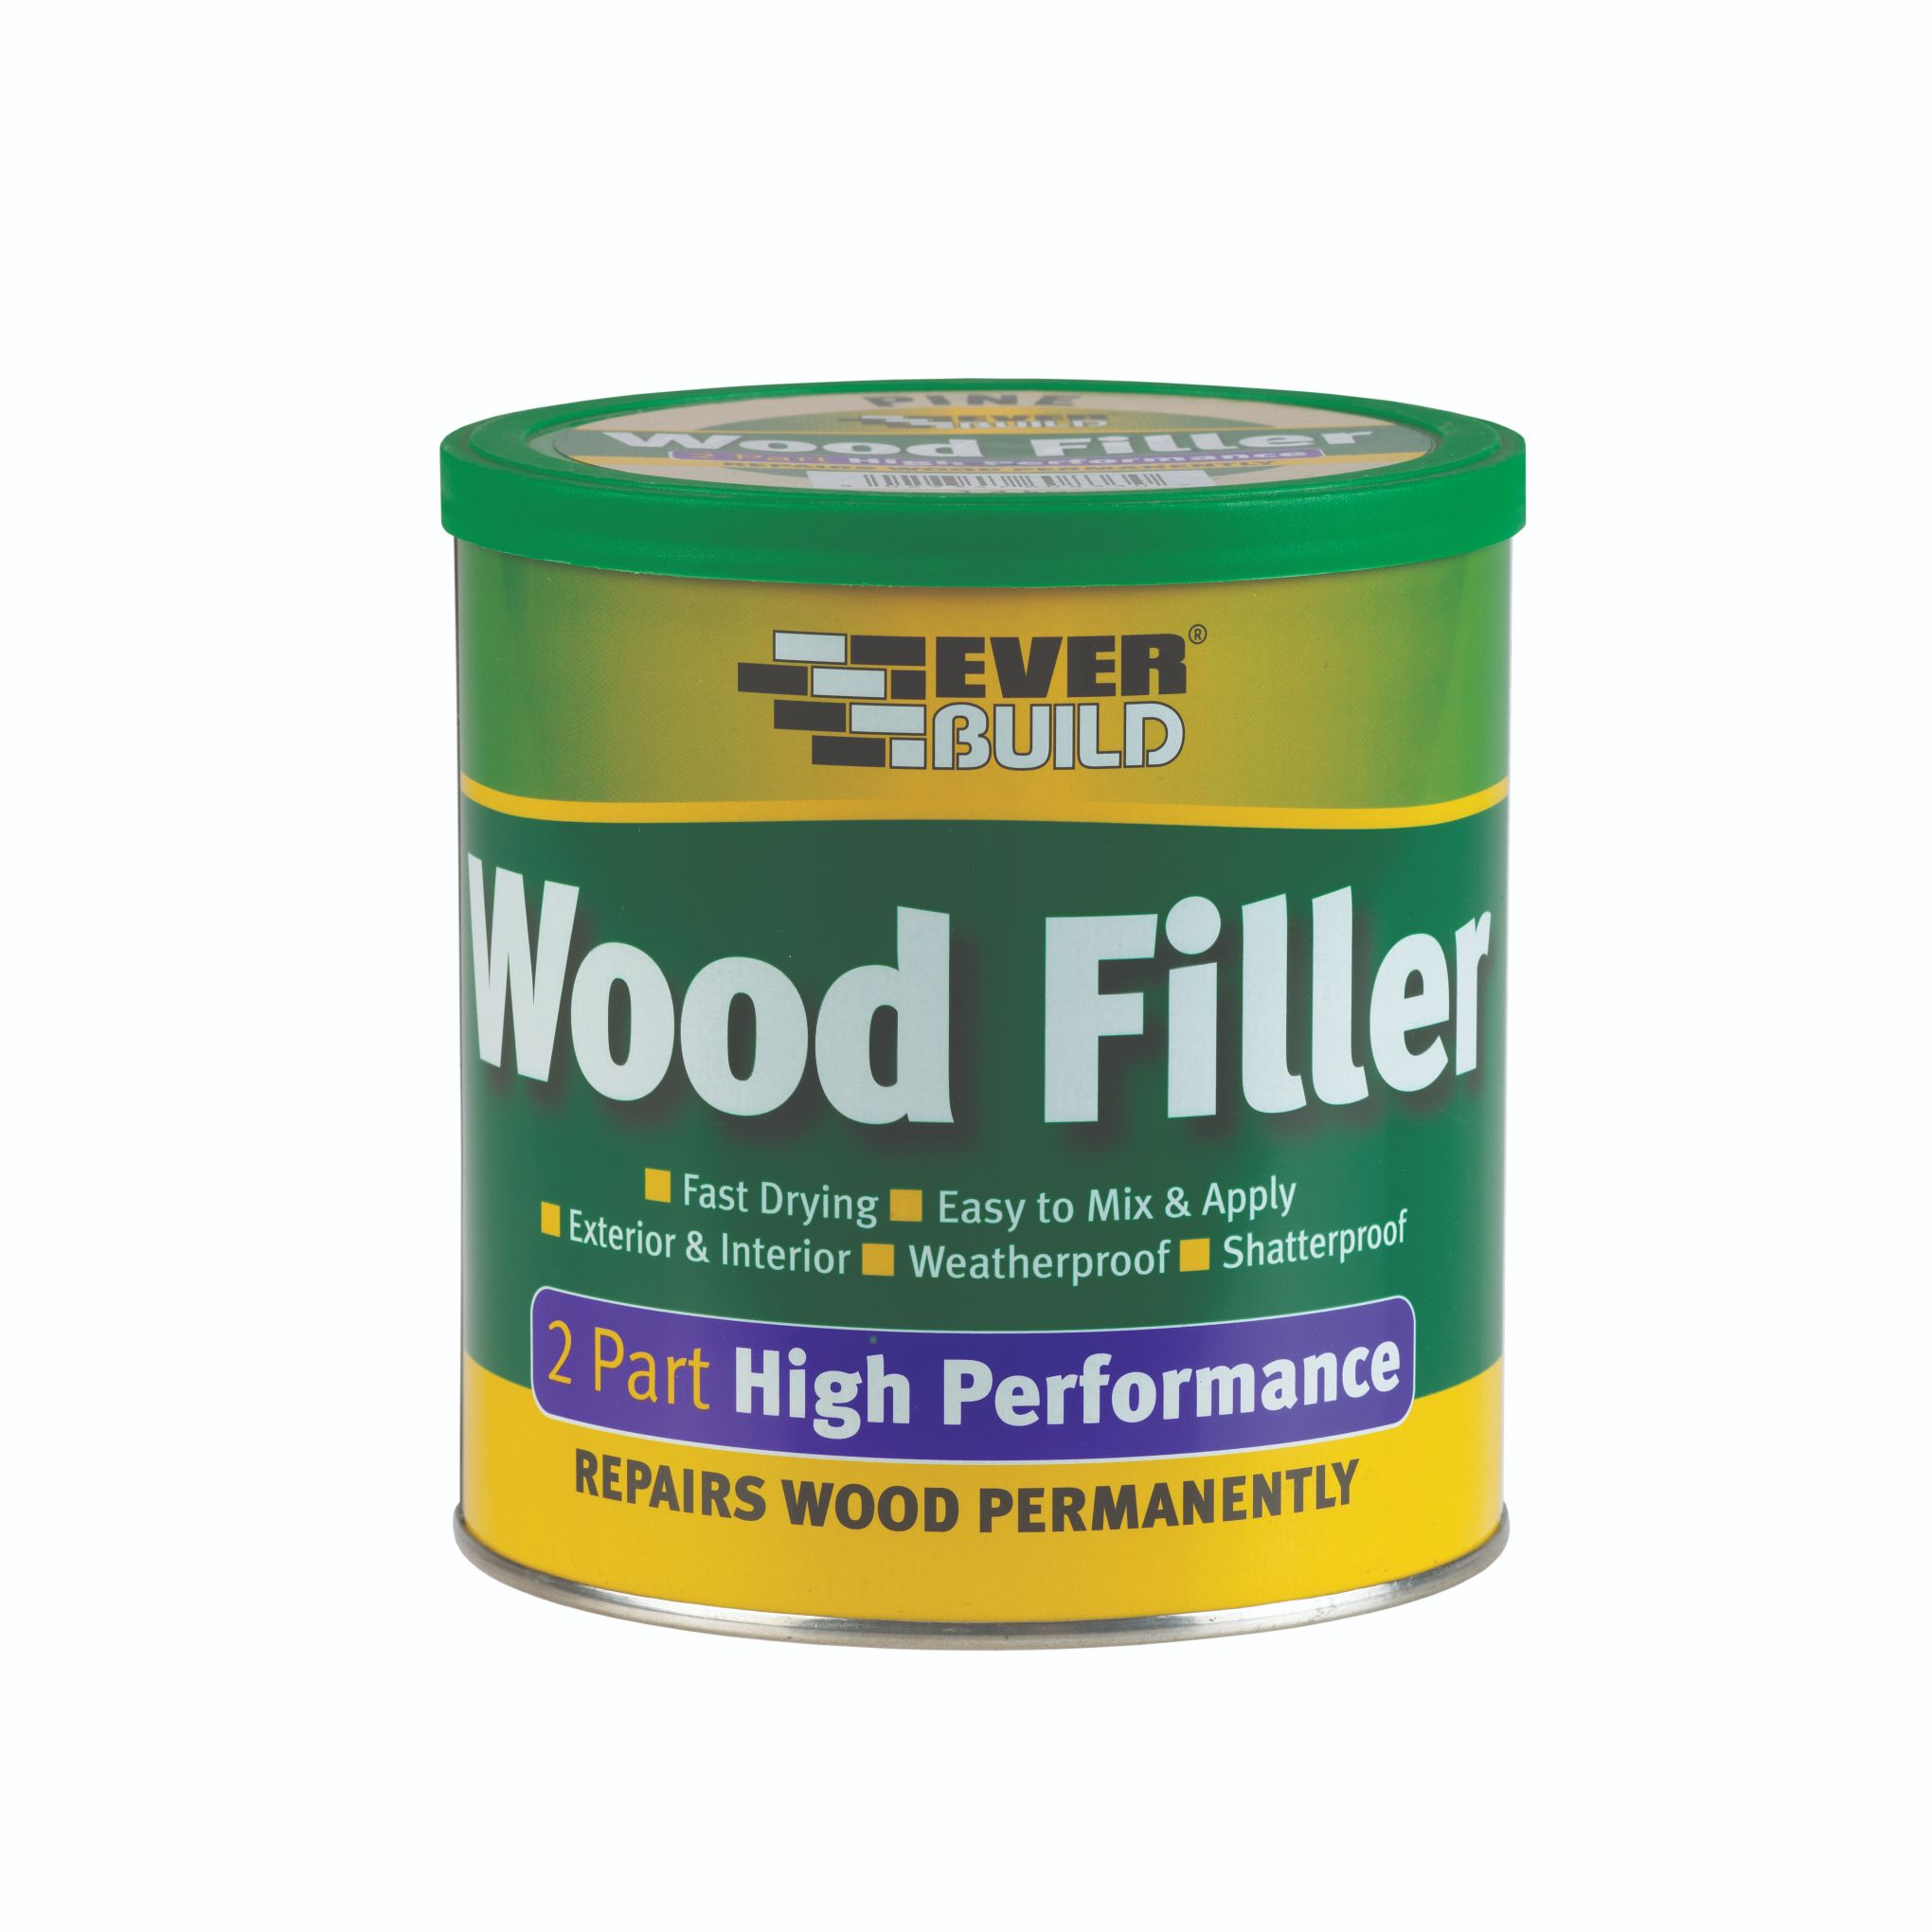 2-PART STAINABLE LIGHT WOODFILLER LARGE - 1.4KG